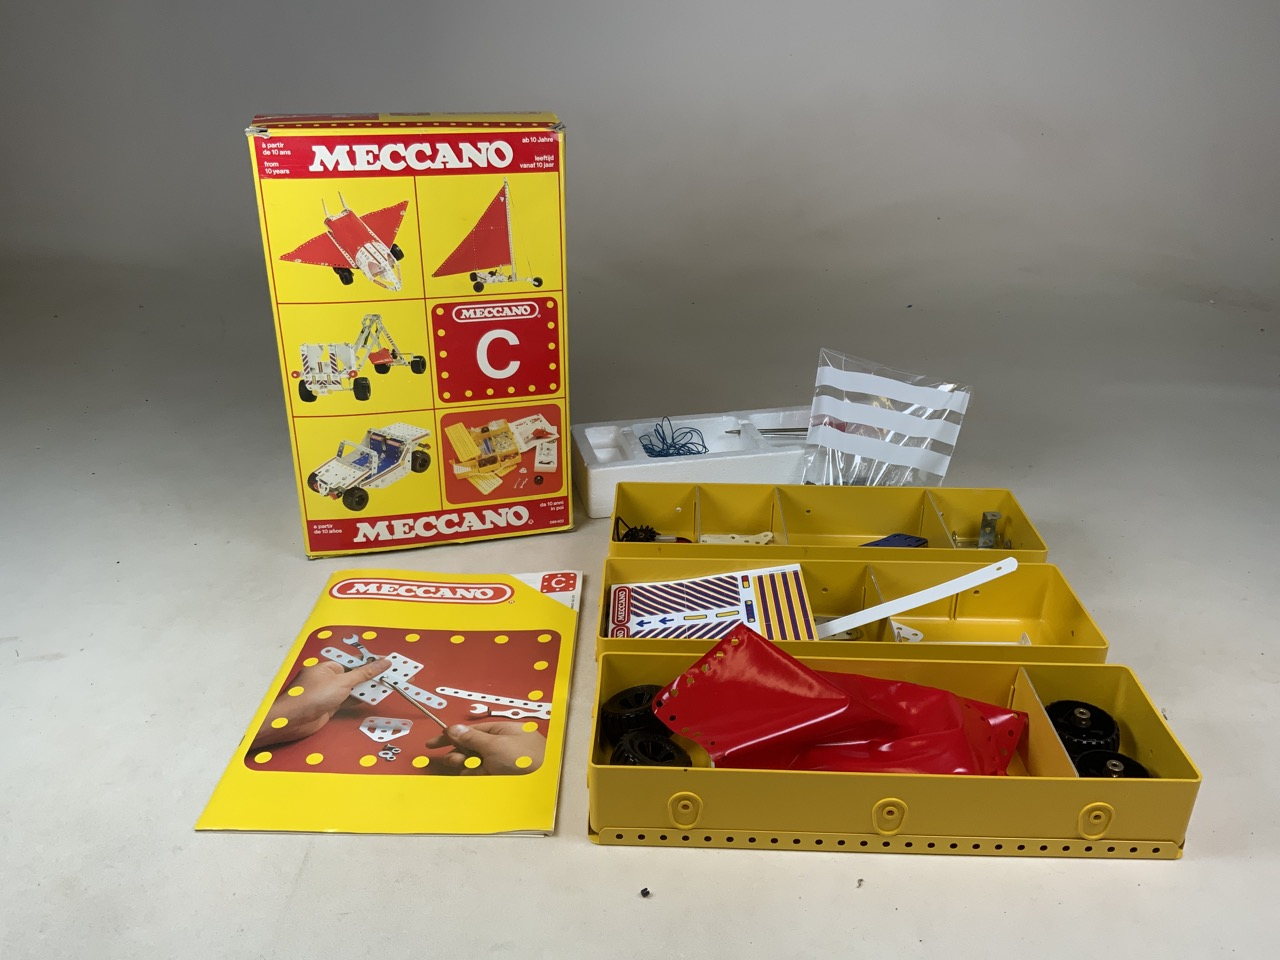 A Meccano C building kit. Three boxes, screws and instruction manuel.